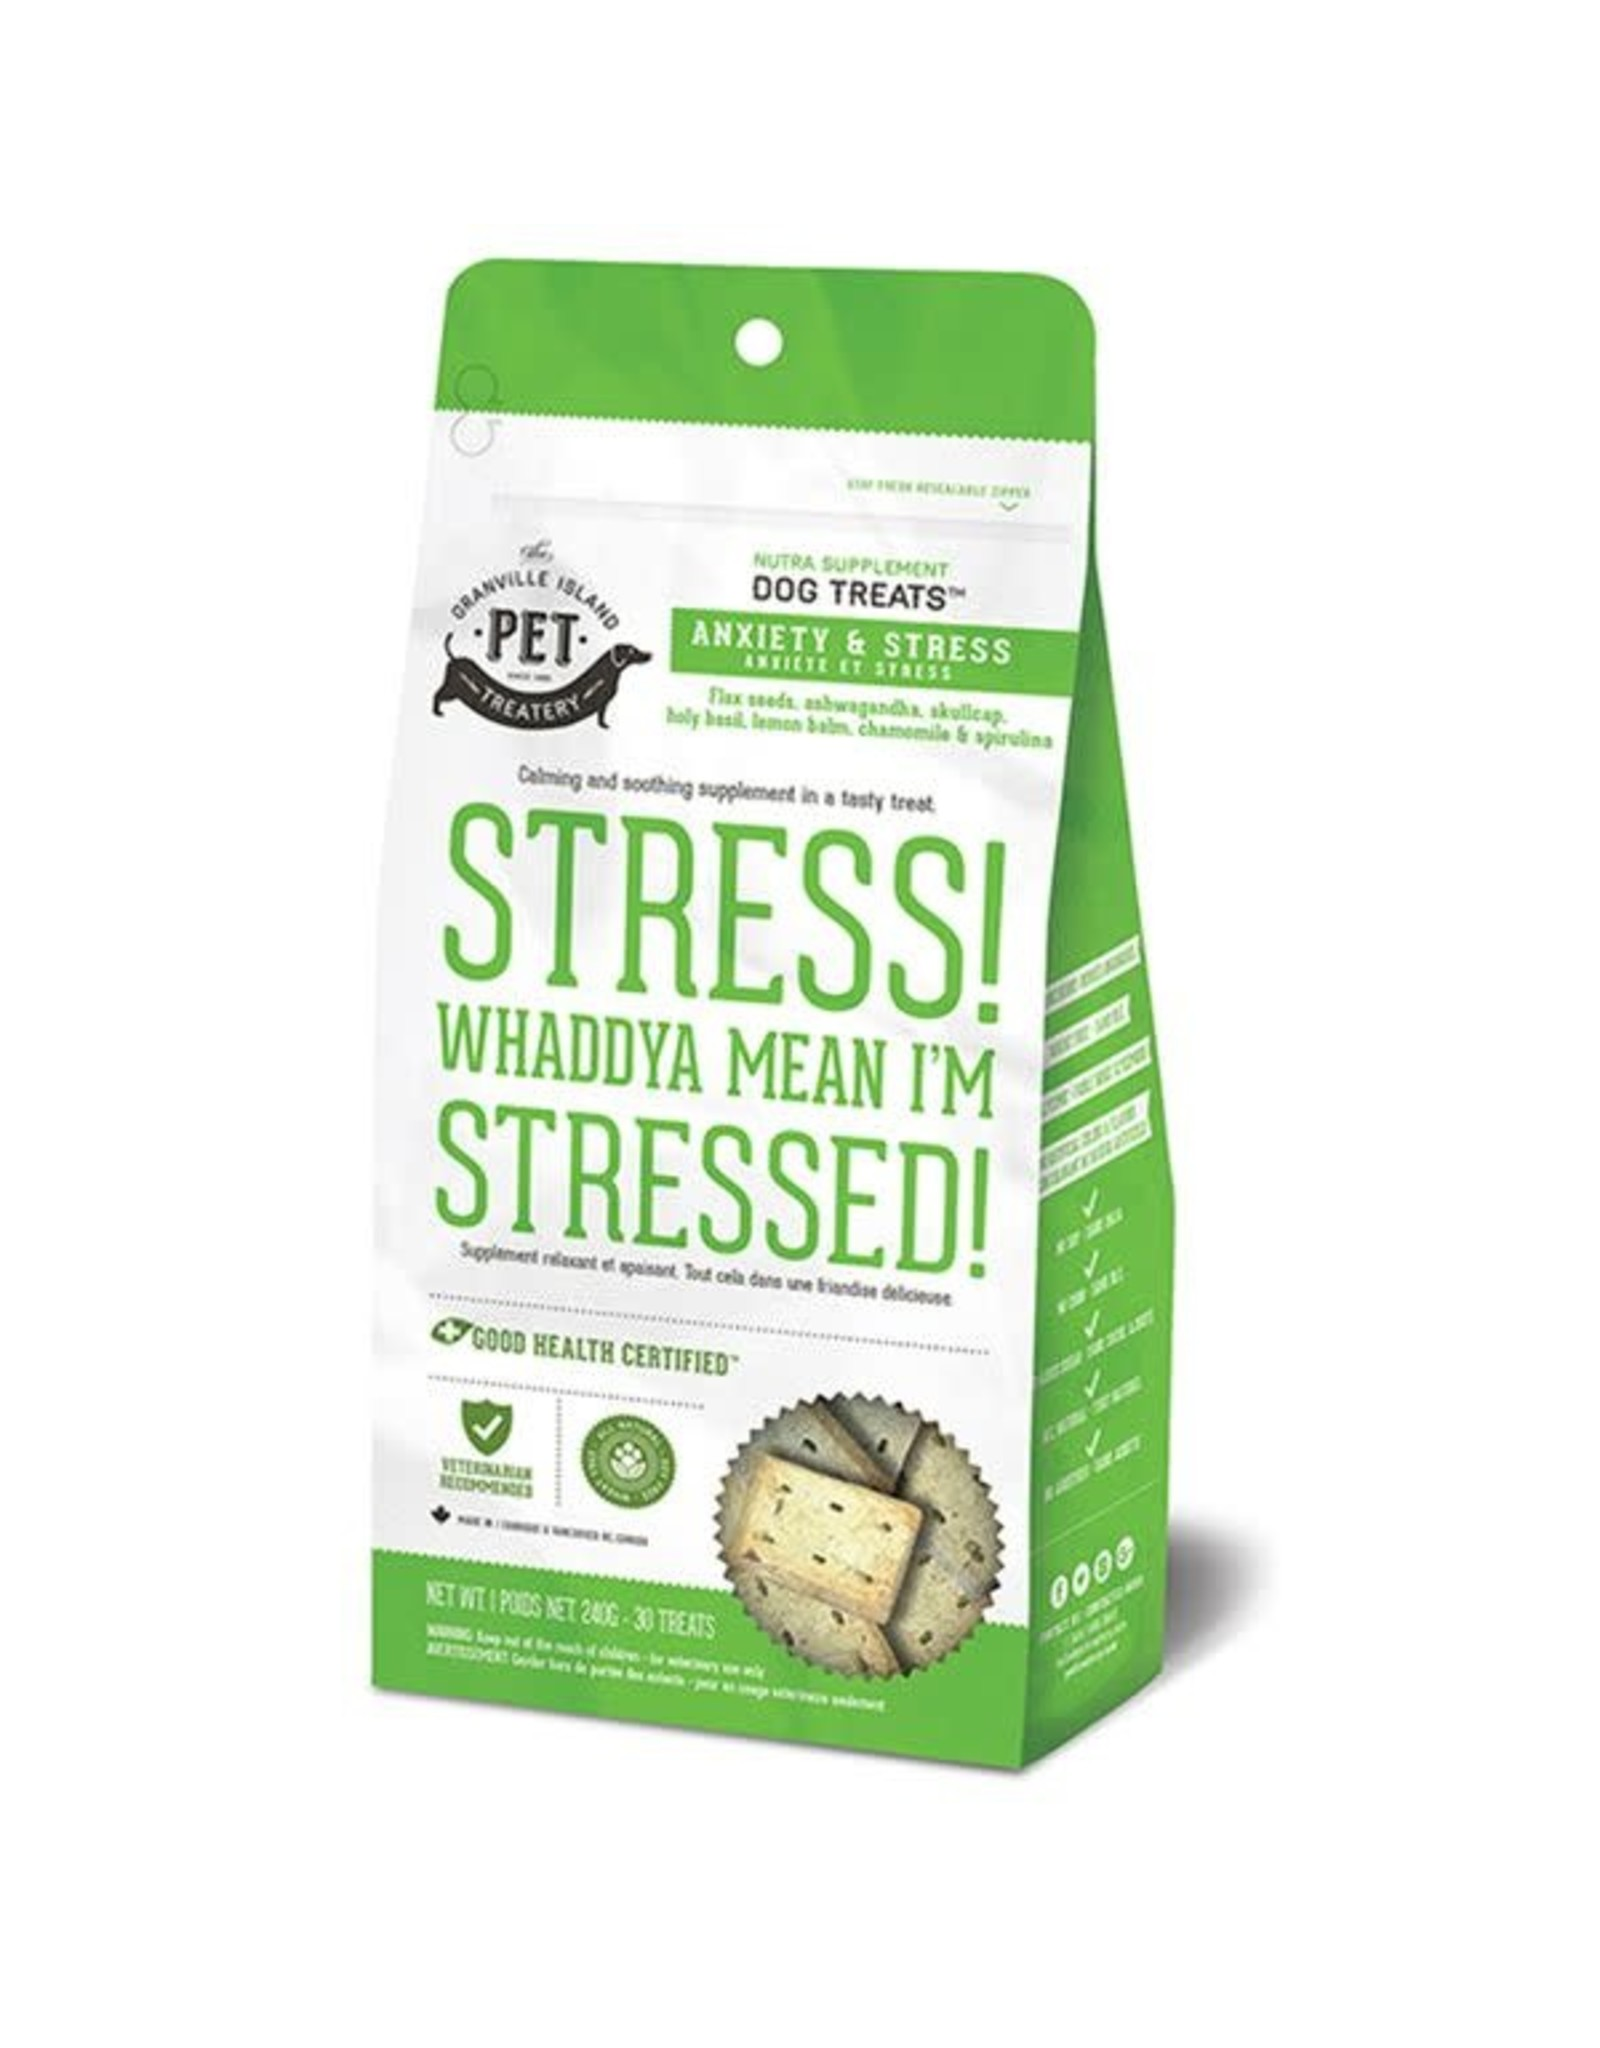 Granville Island Pet Treatery Granville Anxiety and Stress Treats Whaddya Mean Stressed Dog 1X240G